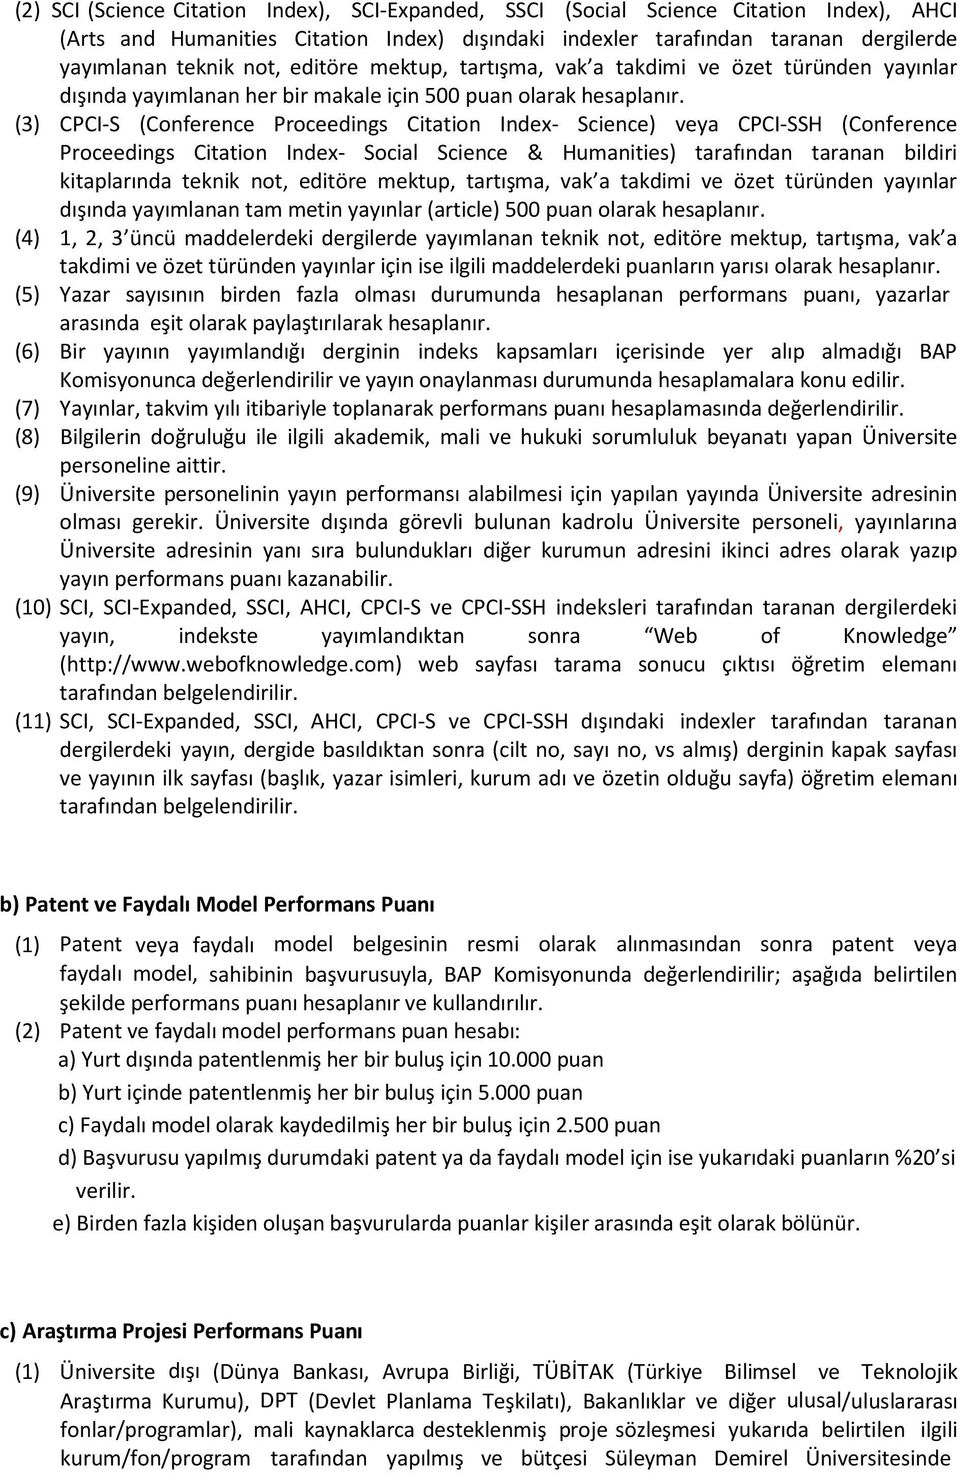 (3) CPCI-S (Conference Proceedings Citation Index- Science) veya CPCI-SSH (Conference Proceedings Citation Index- Social Science & Humanities) tarafından taranan bildiri kitaplarında teknik not,